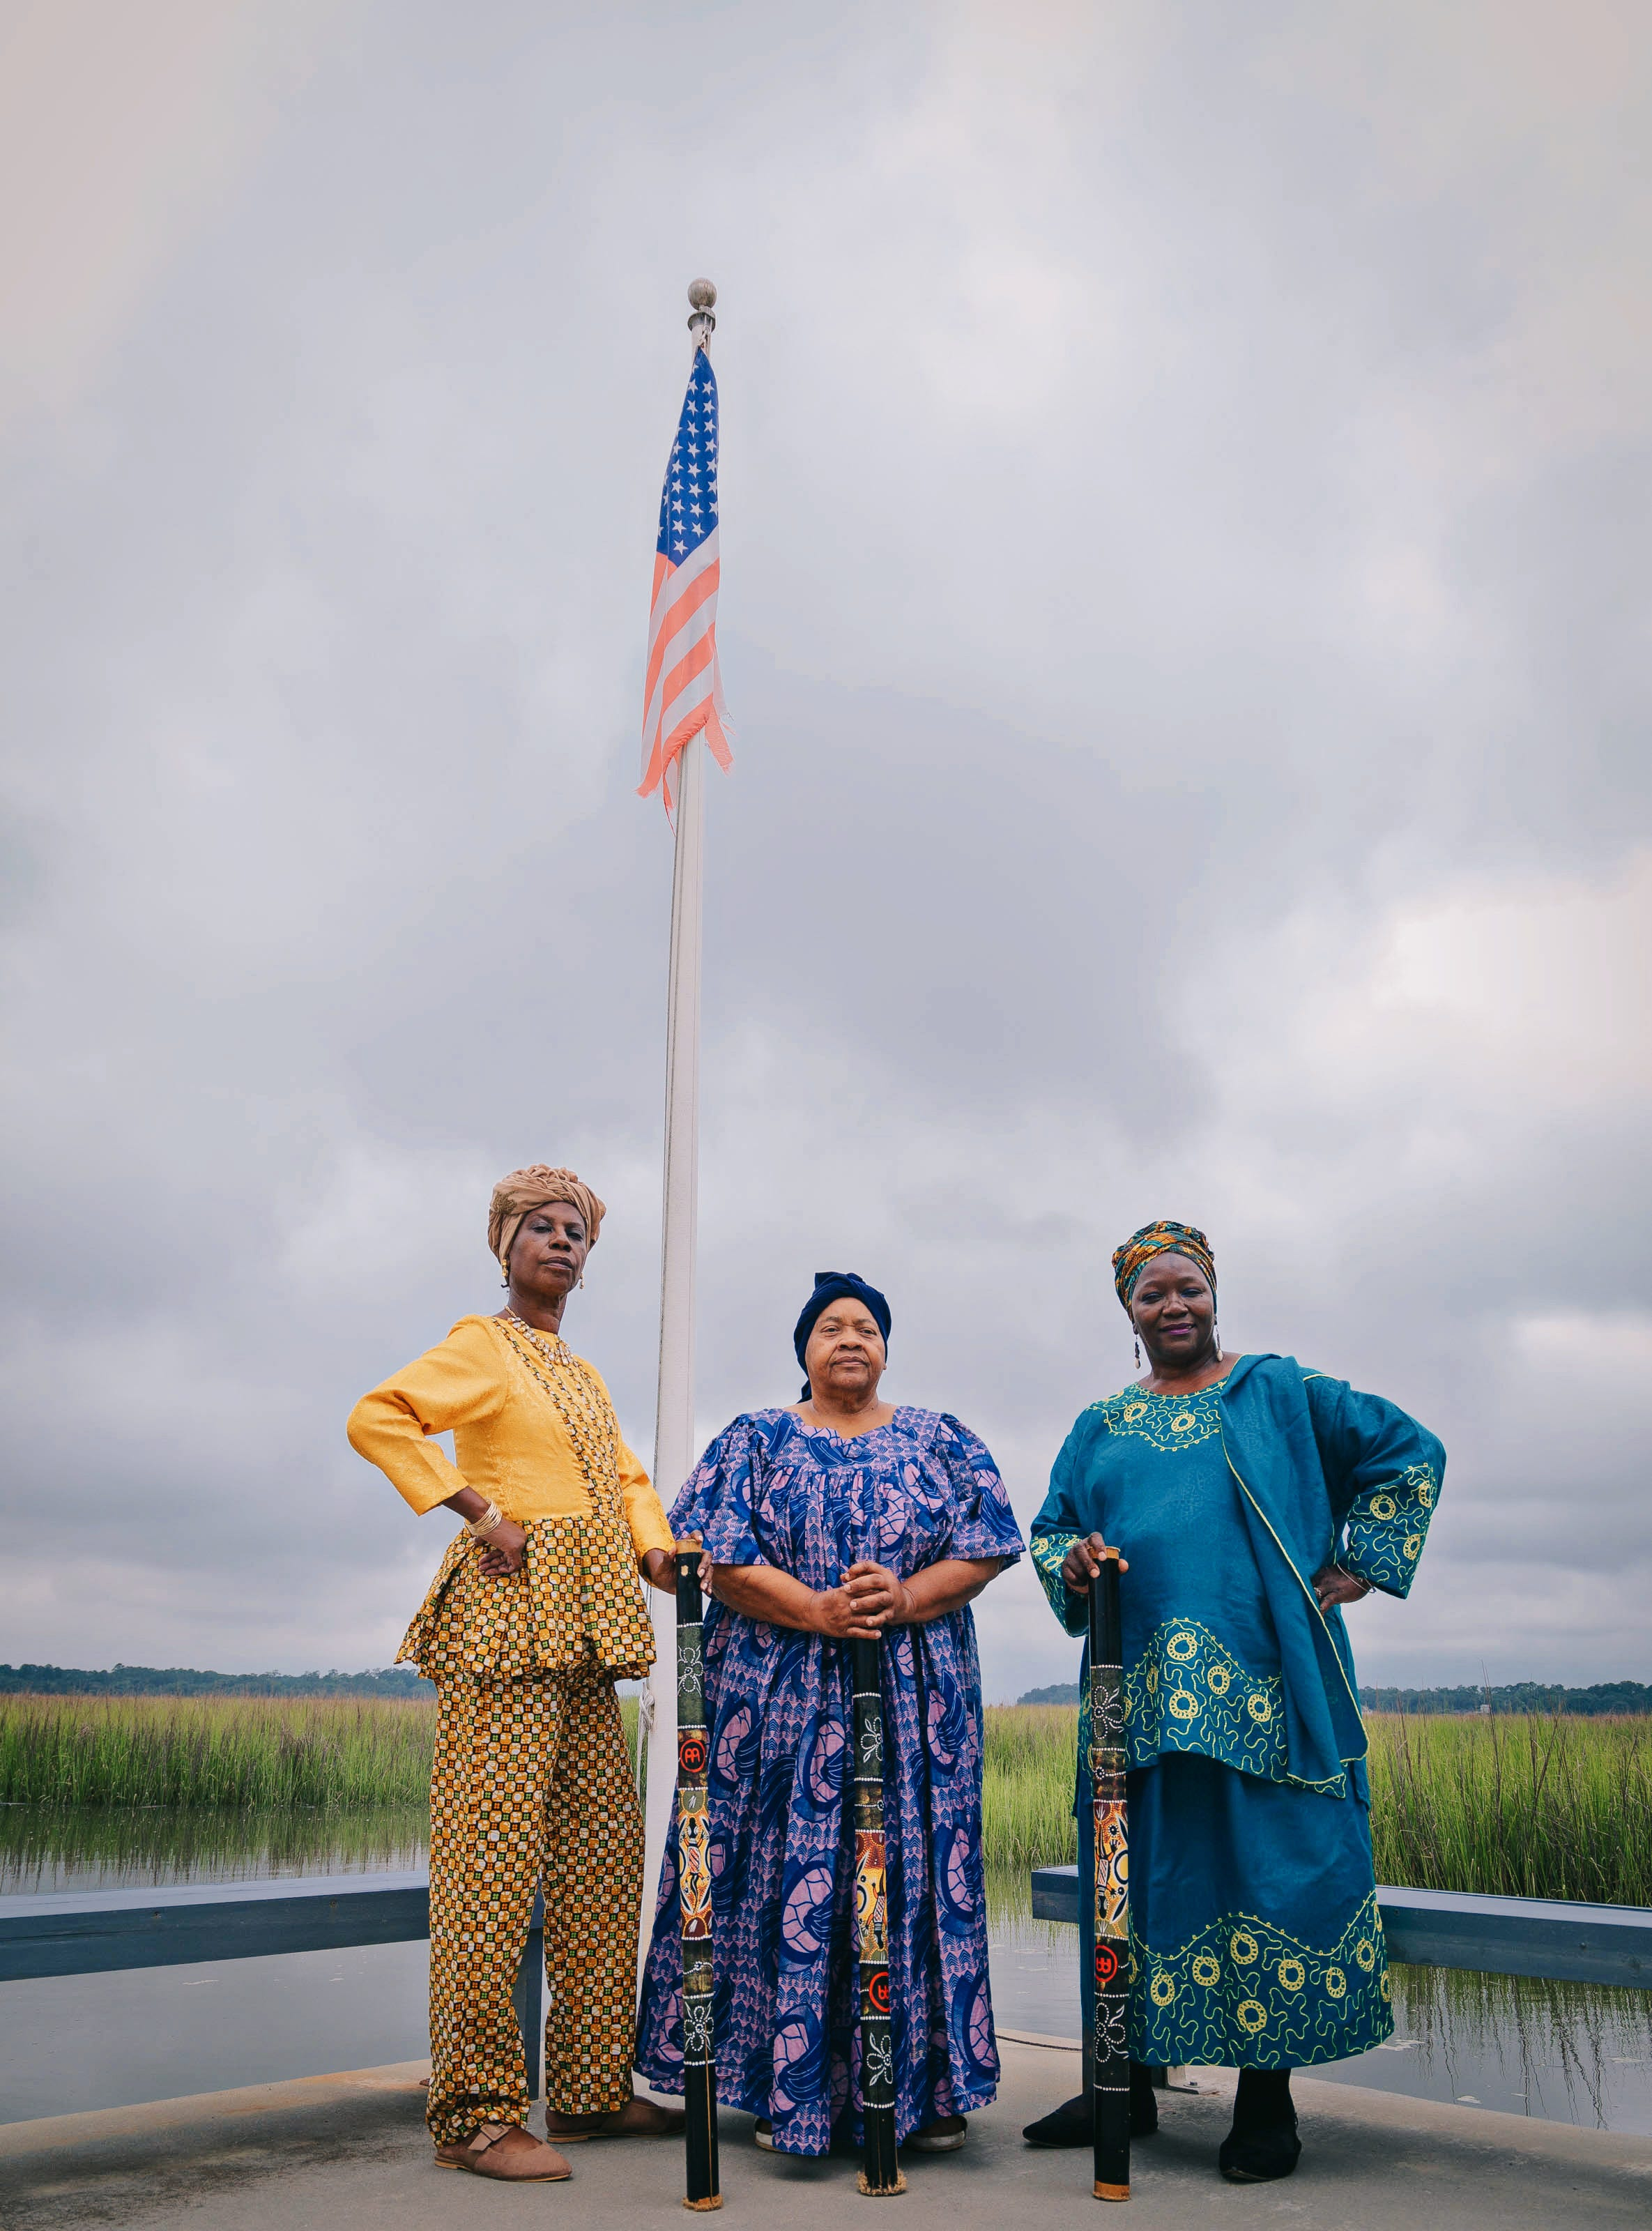 Rosalyn Rouse, Sister Linnie Kelly and Patt Gunn at Pin Point Heritage Museum in Savannah.